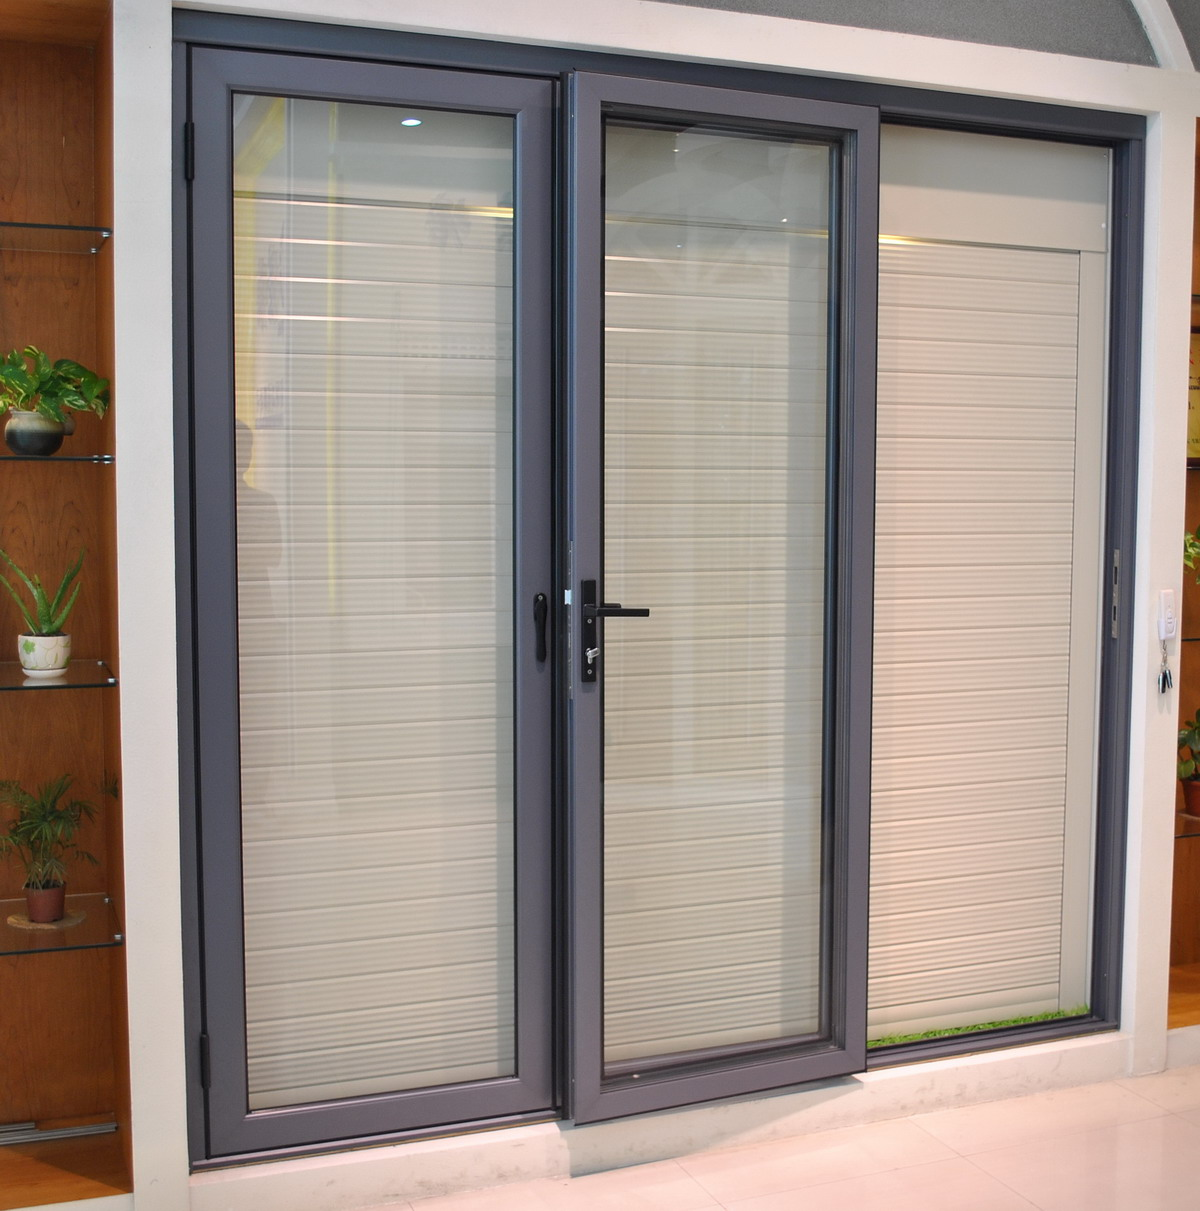 used exterior doors. Aluminium Windows and Doors Used Exterior for Sale Buy Price